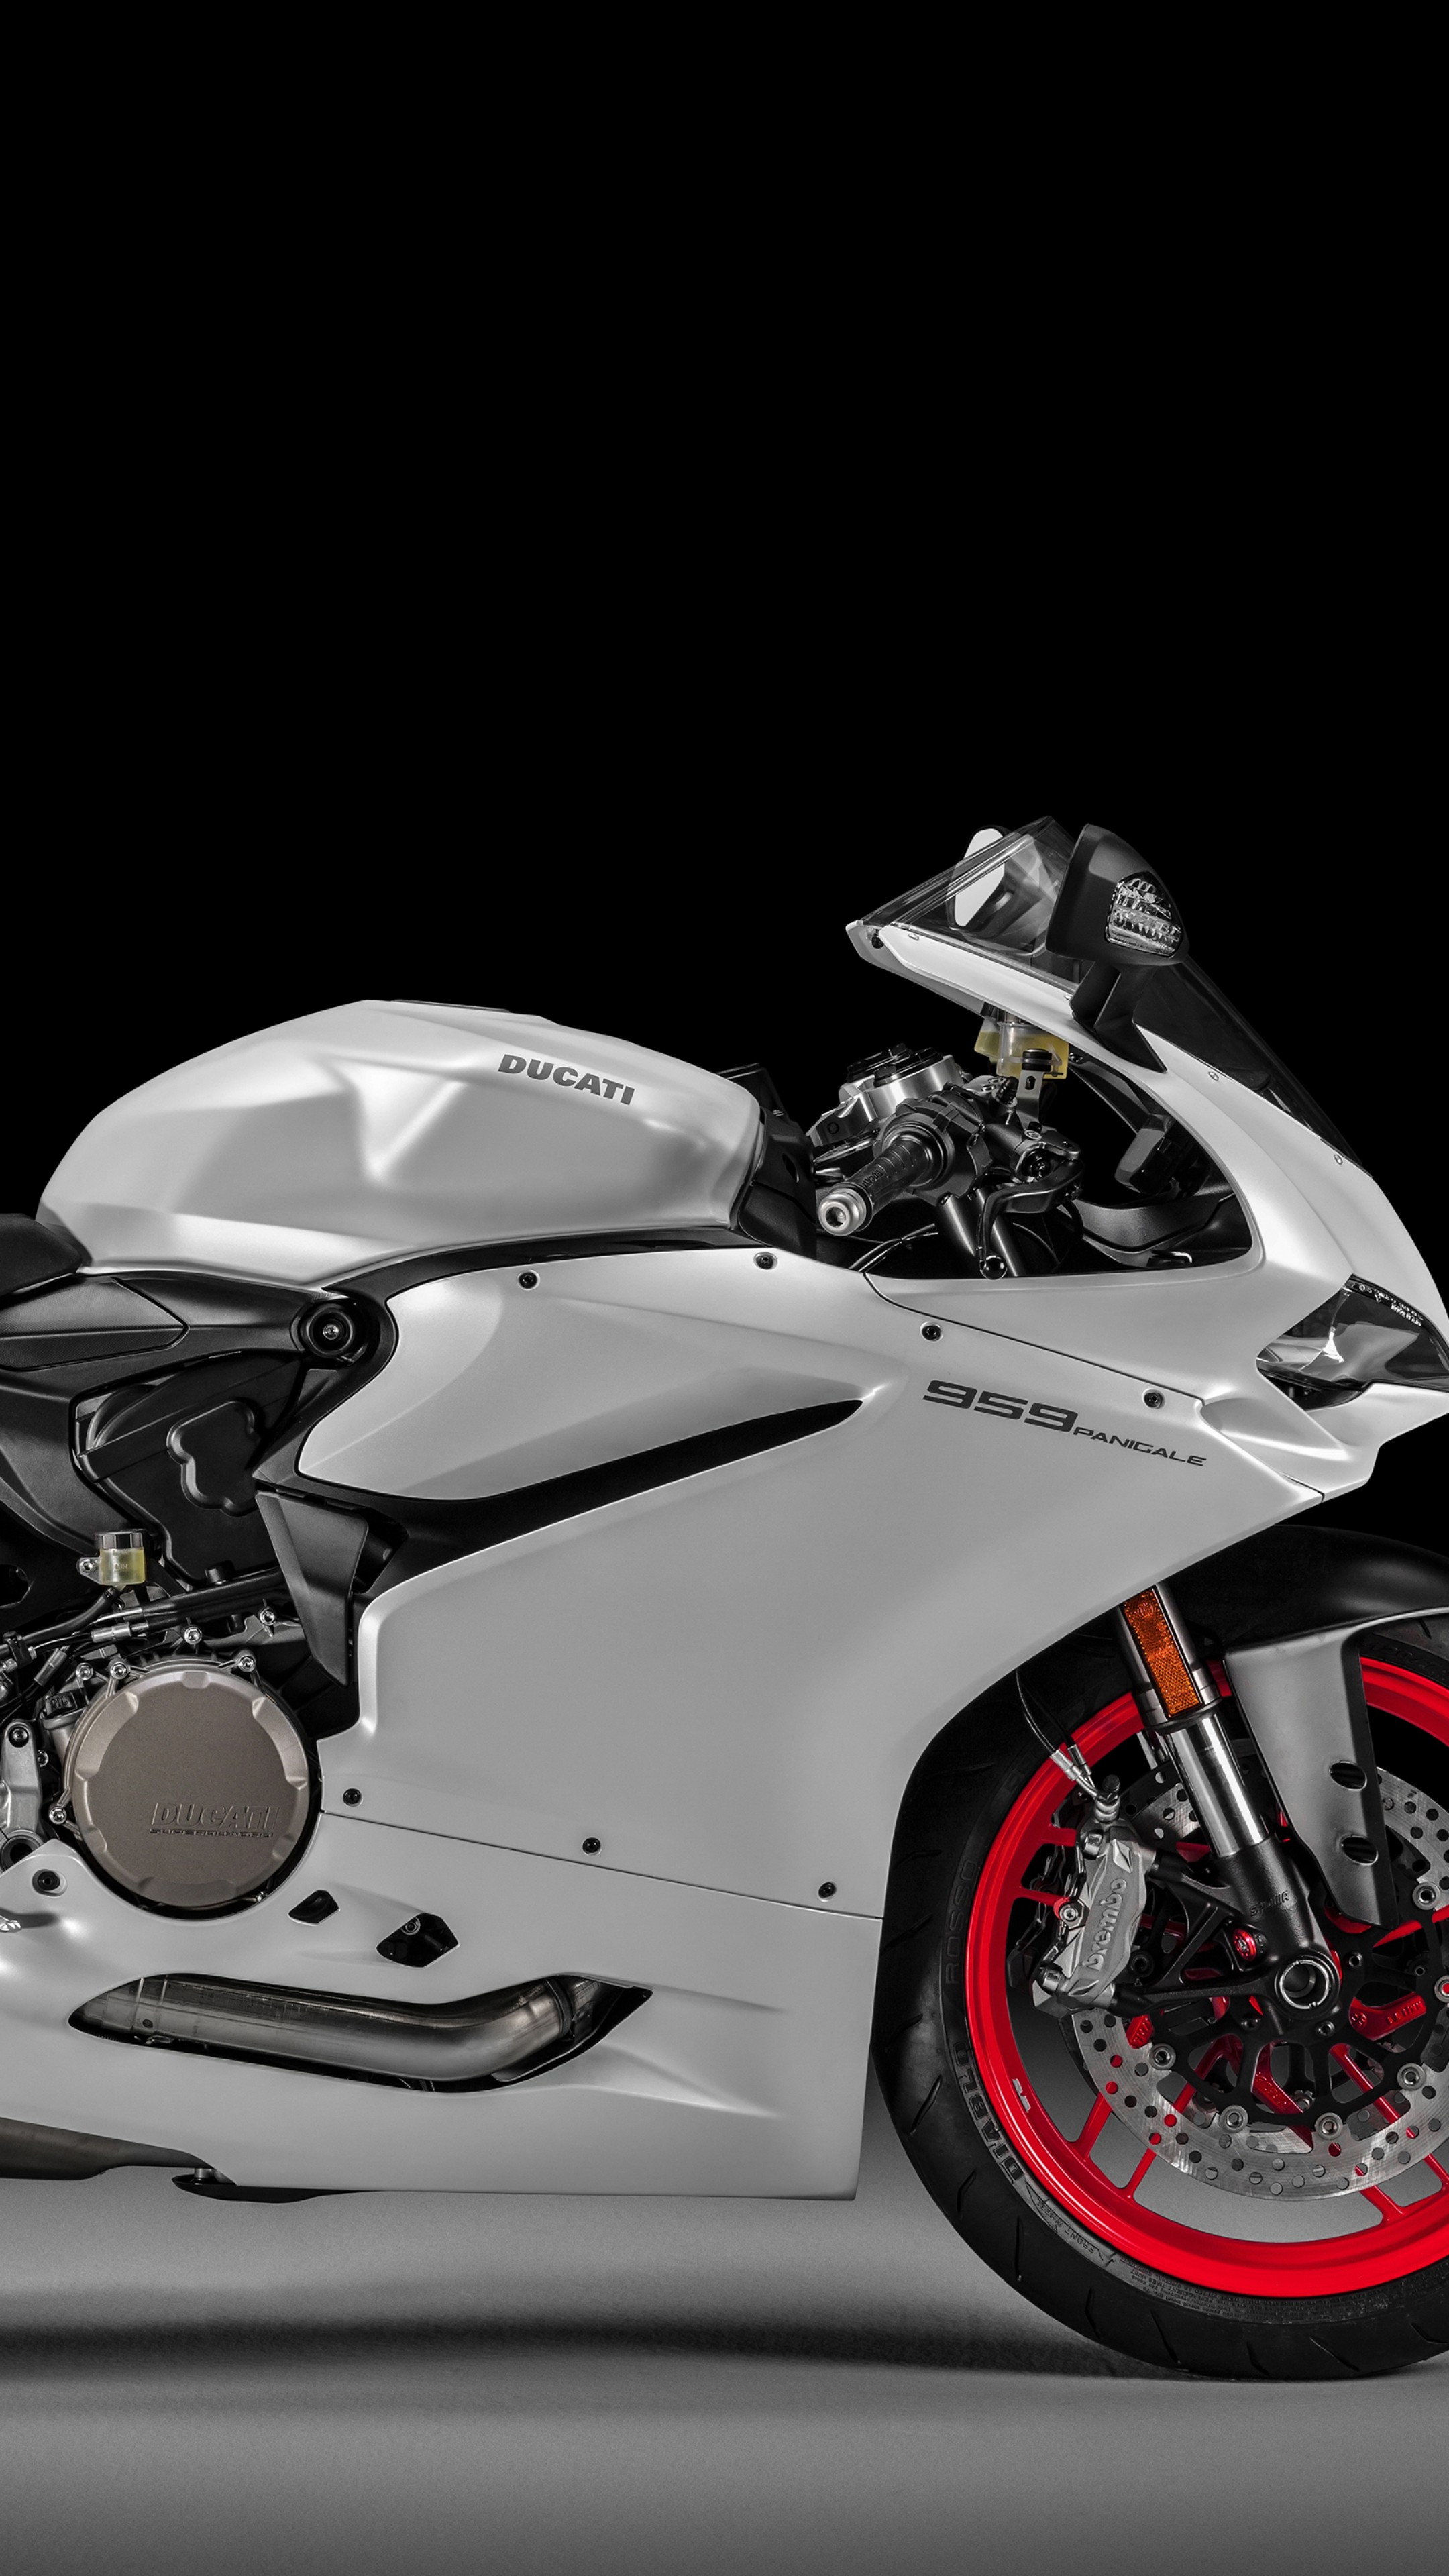 Biker Wallpaper Quotes Wallpaper Ducati 959 Panigale Turing Bike 2016 Best